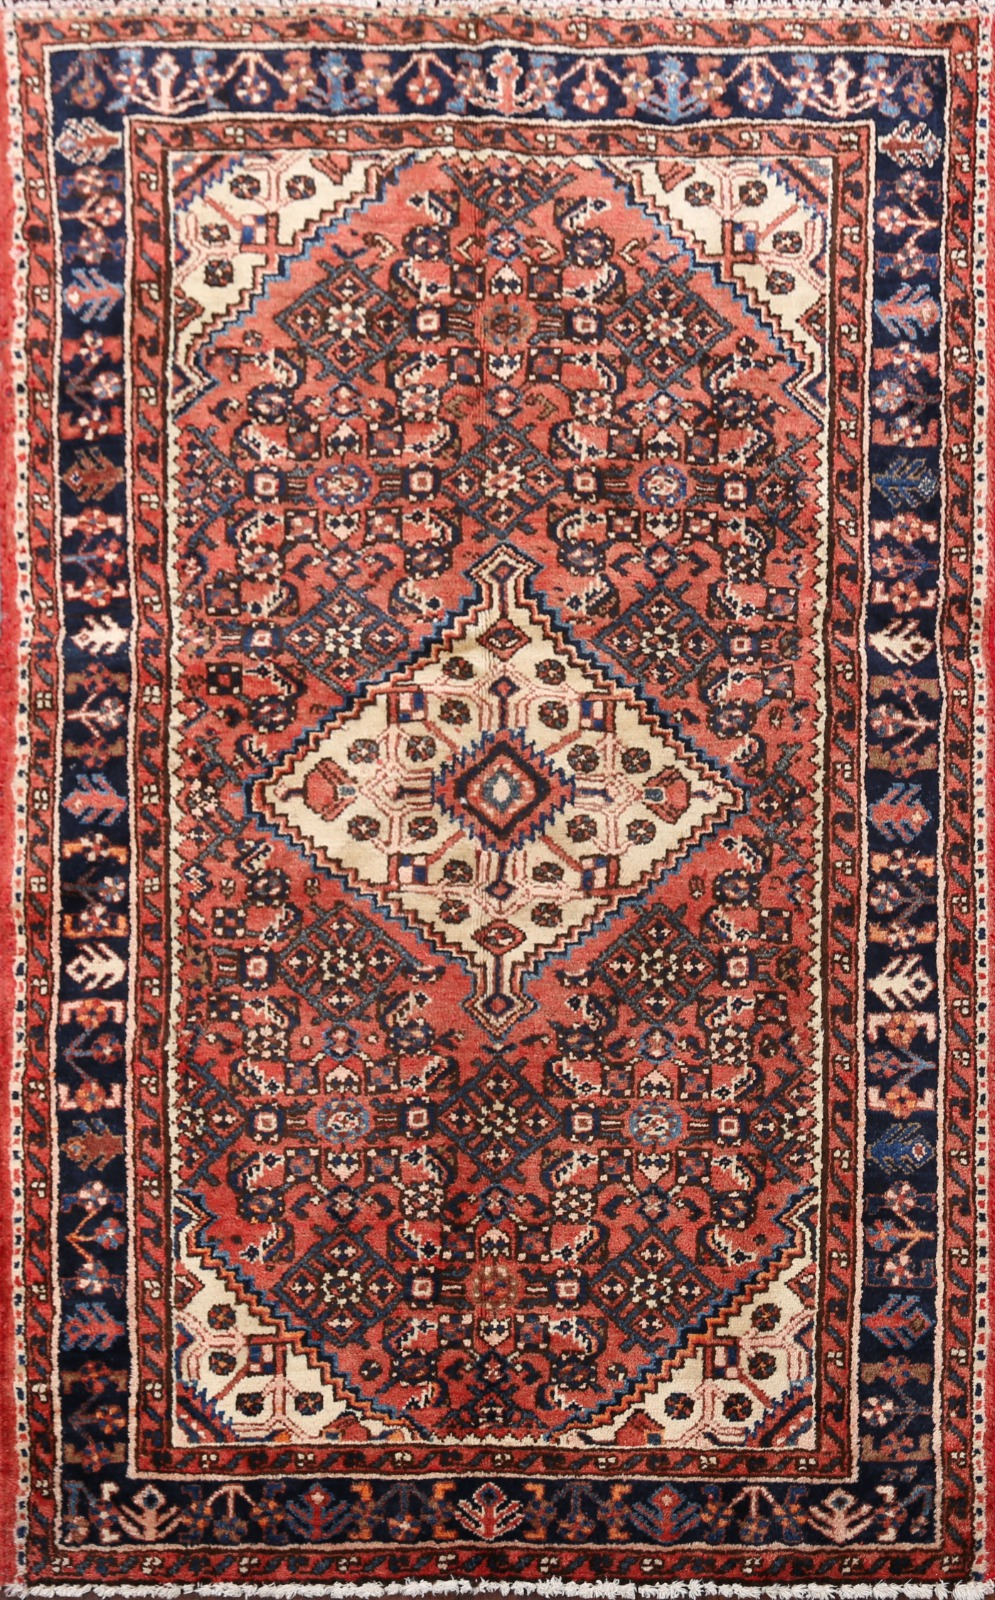 Vintage Traditional Geometric Hamedan Area Rug Wool Hand Knotted Oriental 4x5 Ft Ebay